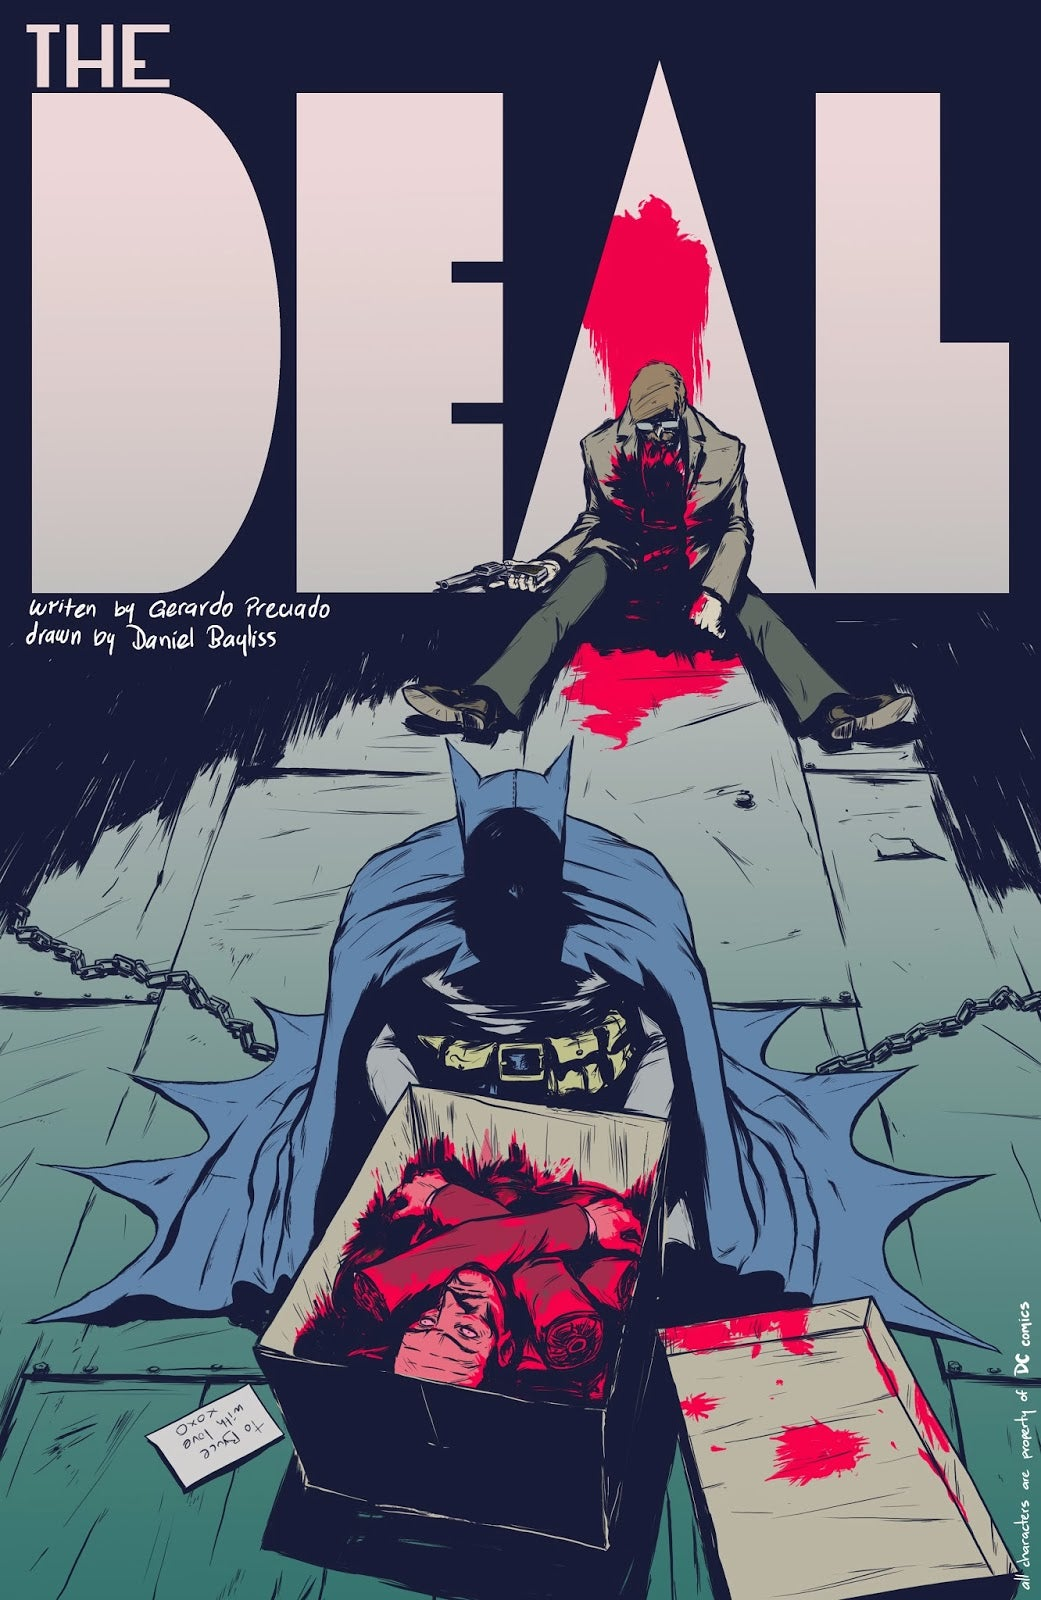 Batman: The Deal Creators Discuss Their Hugely Popular Fan